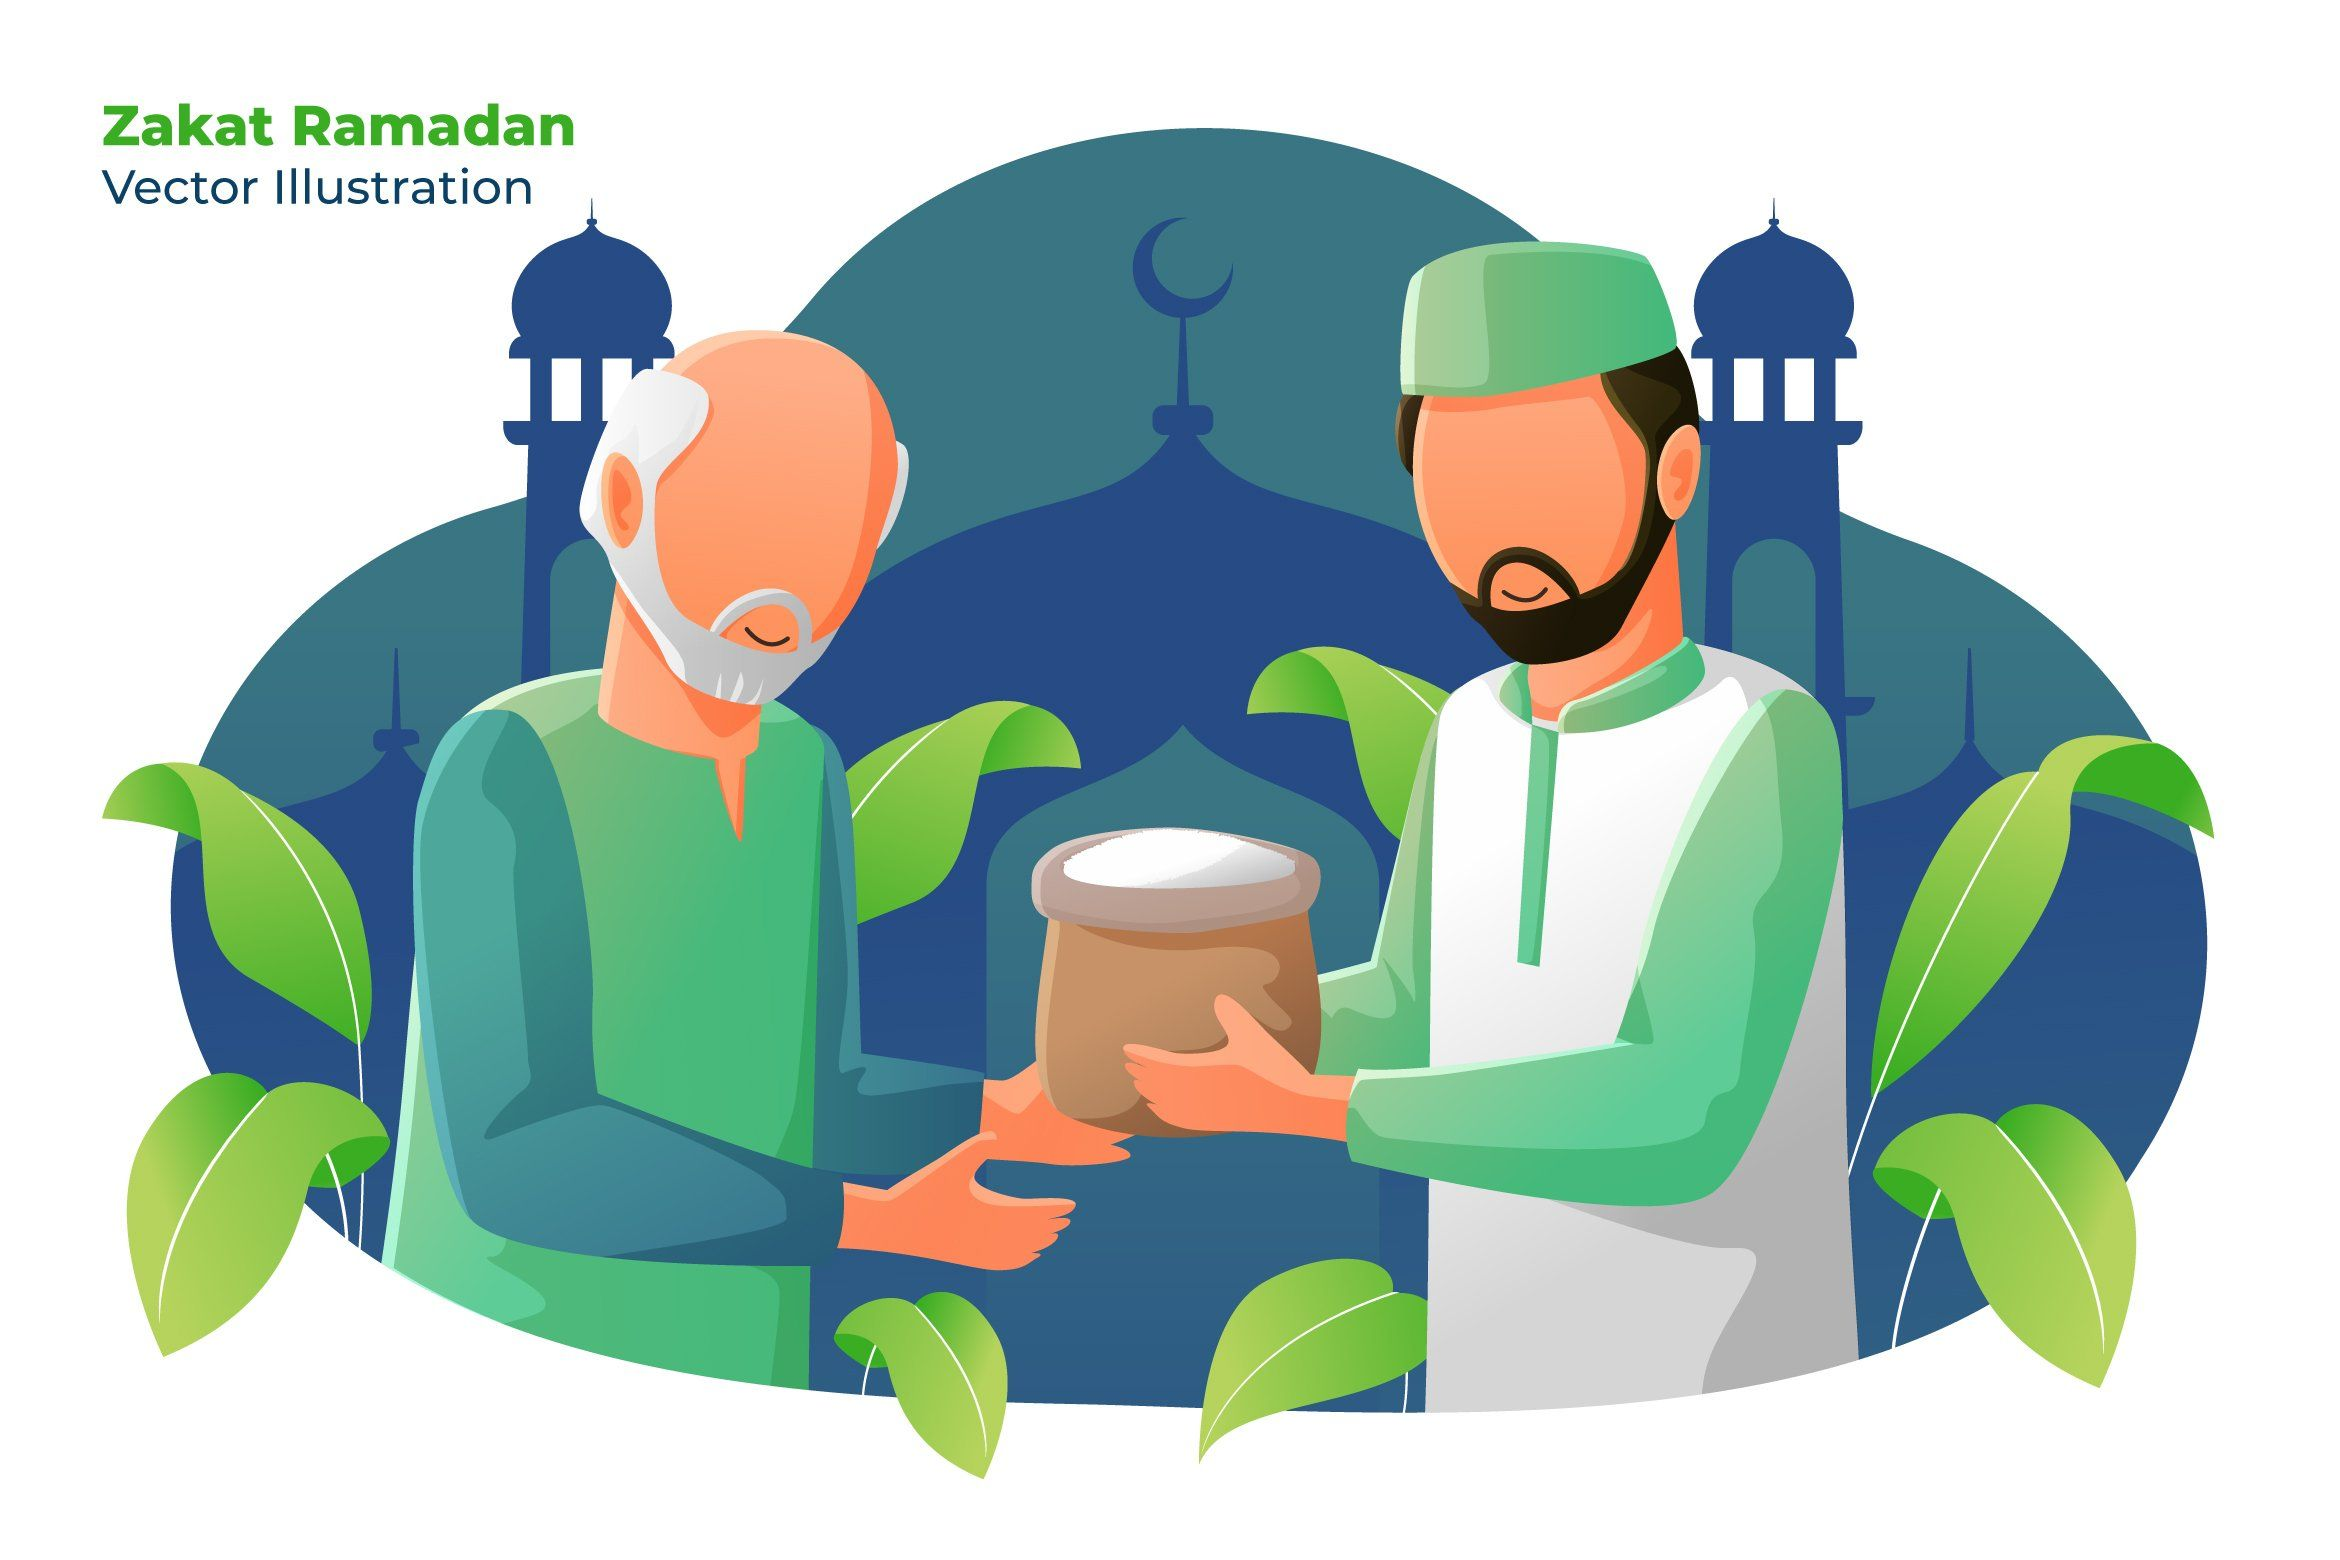 Zakat Ramadan - Vector Illustration by AQR Studio on